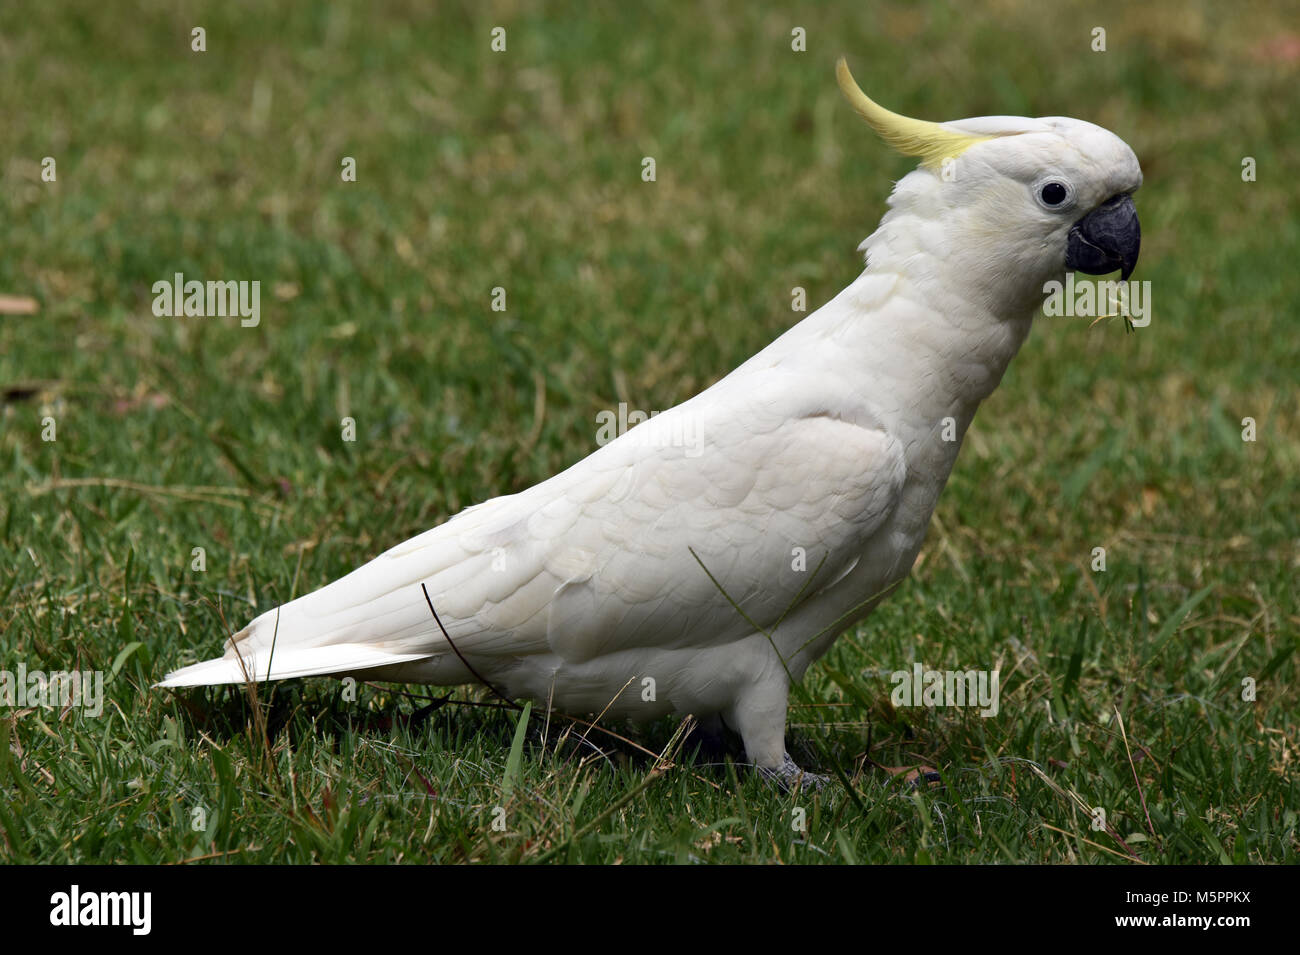 Crested cockatoo - Stock Image